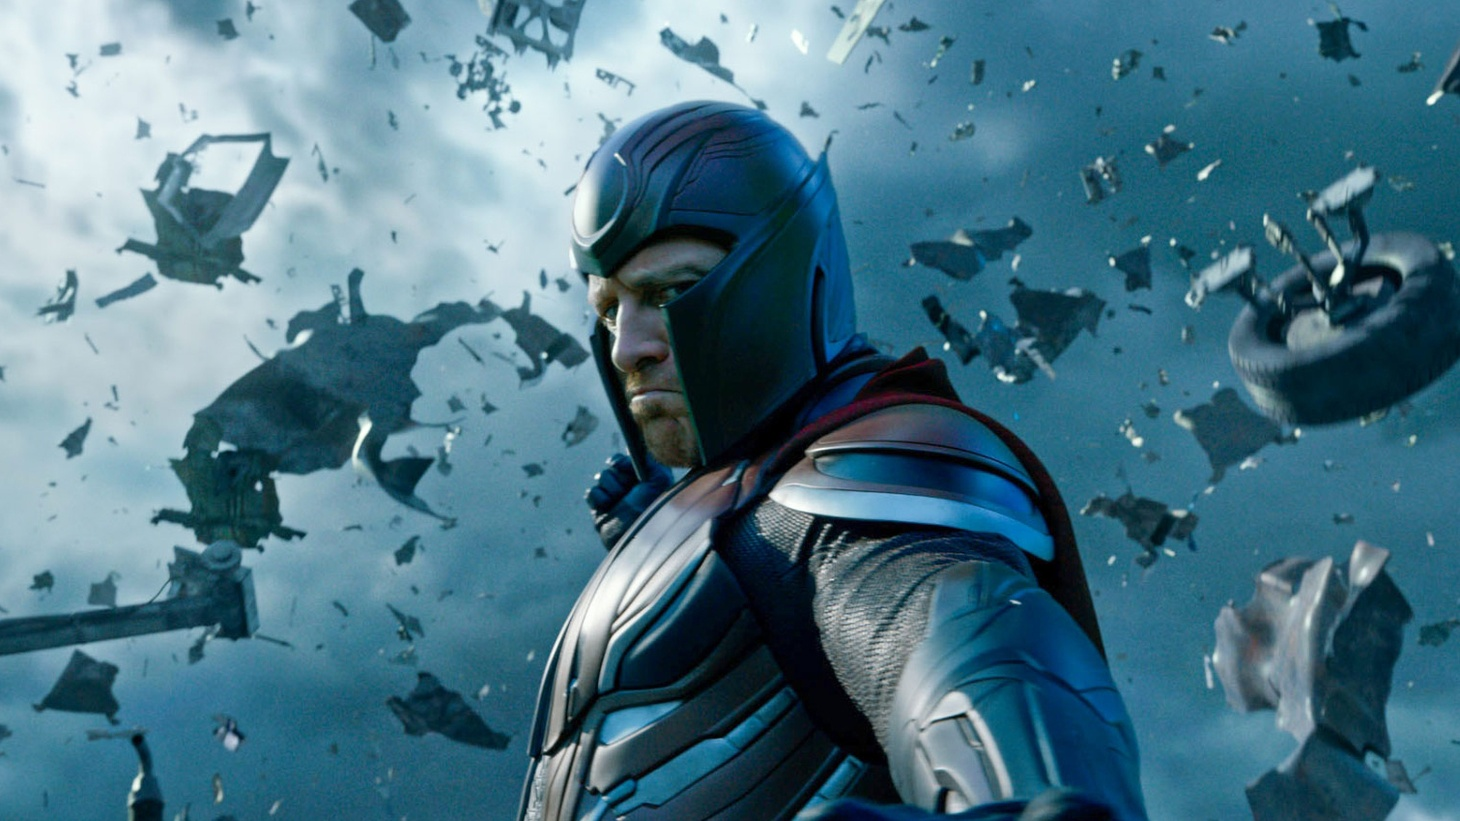 Enormous going on keep going on, and on, in X-Men: Apocalypse. It's a collection of explosions, eruptions and conflagrations that looks like the implosion of a franchise. This is disappointing, but also surprising.